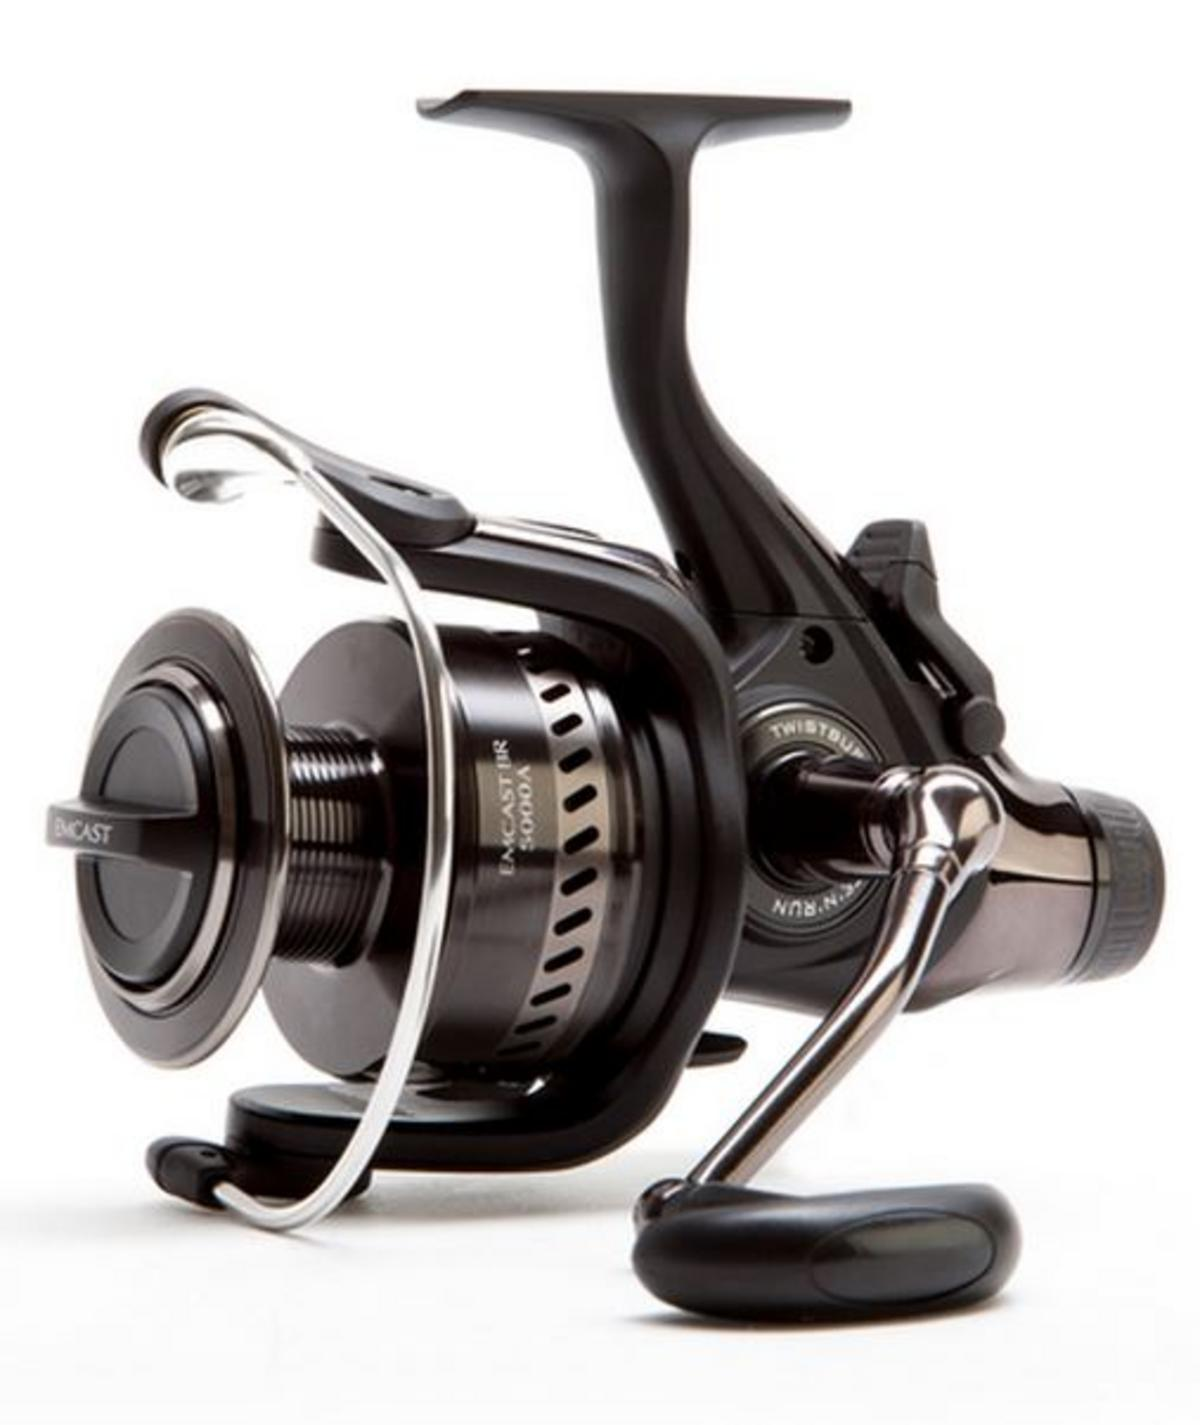 NEW DAIWA EMCAST BR 4500 FISHING REEL MODEL NO. ECBR4500A